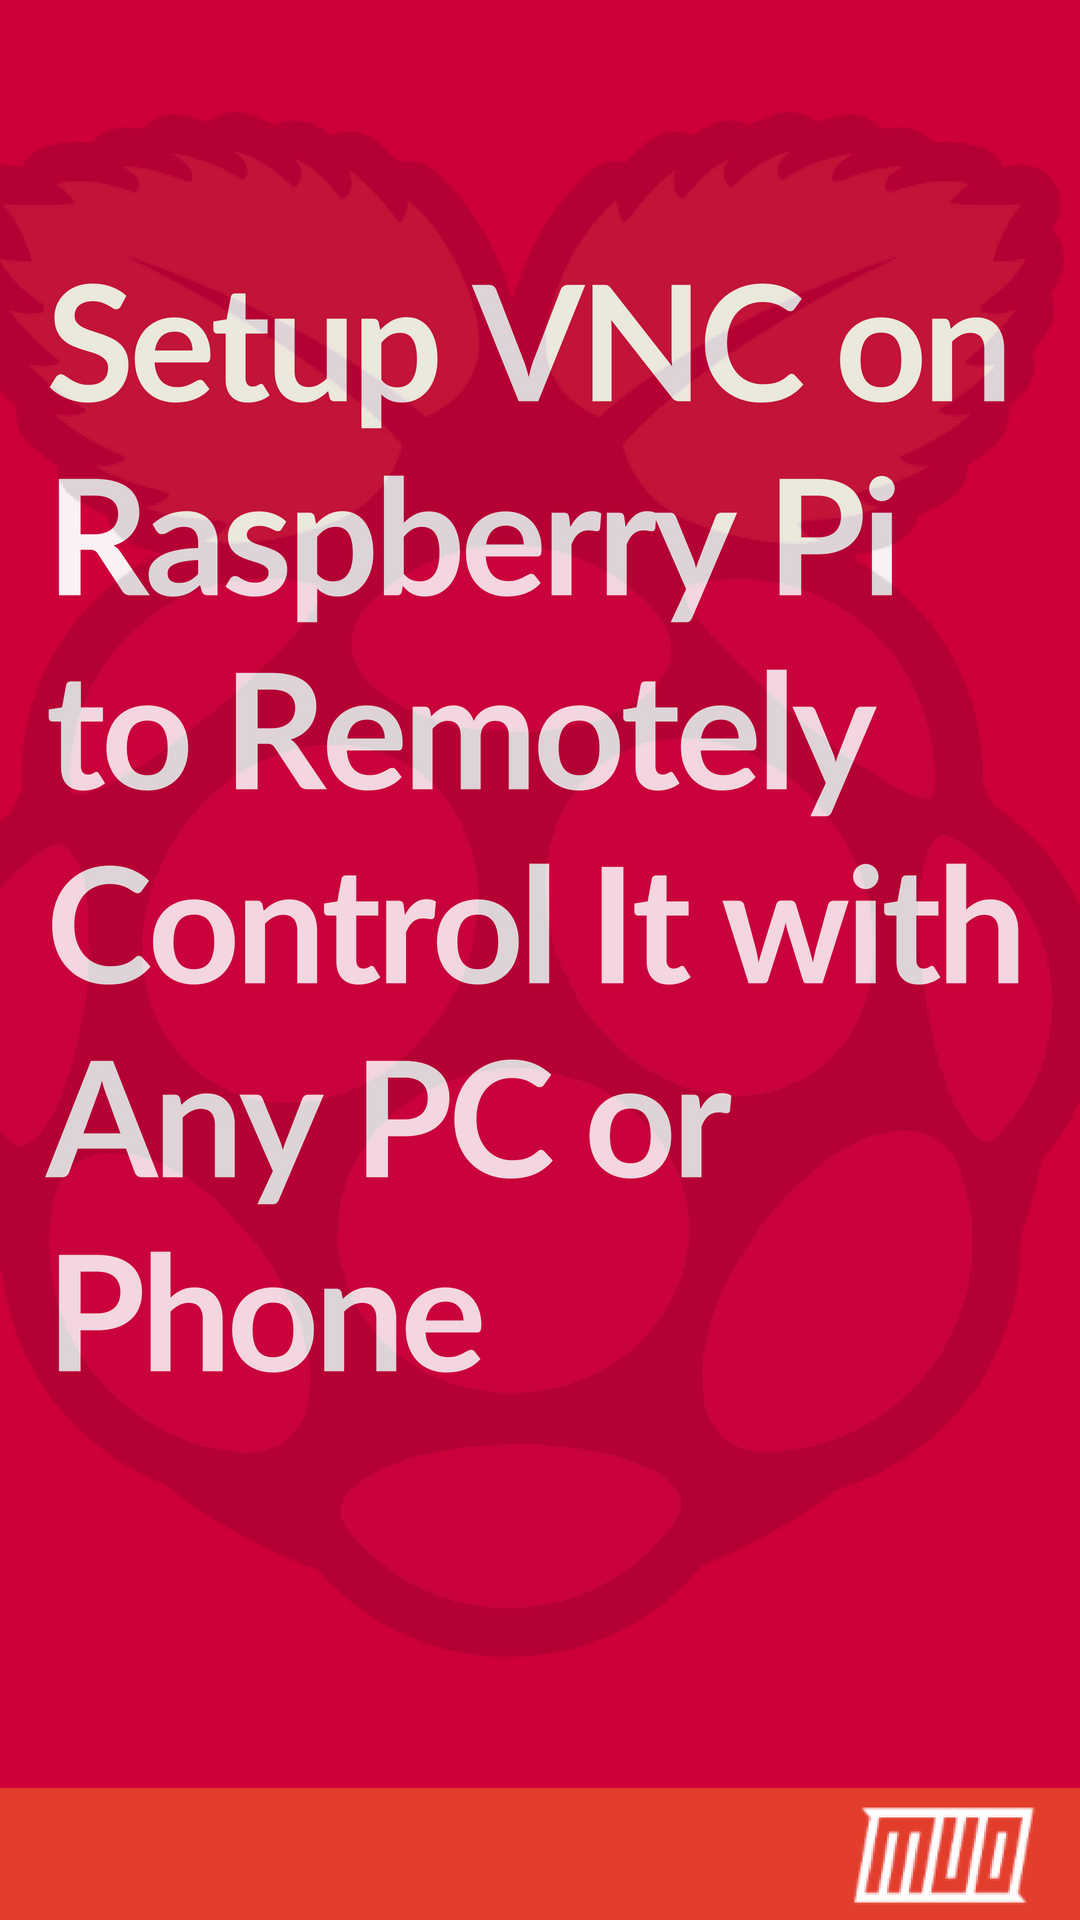 Setup VNC on Raspberry Pi to Remotely Control It with Any PC or